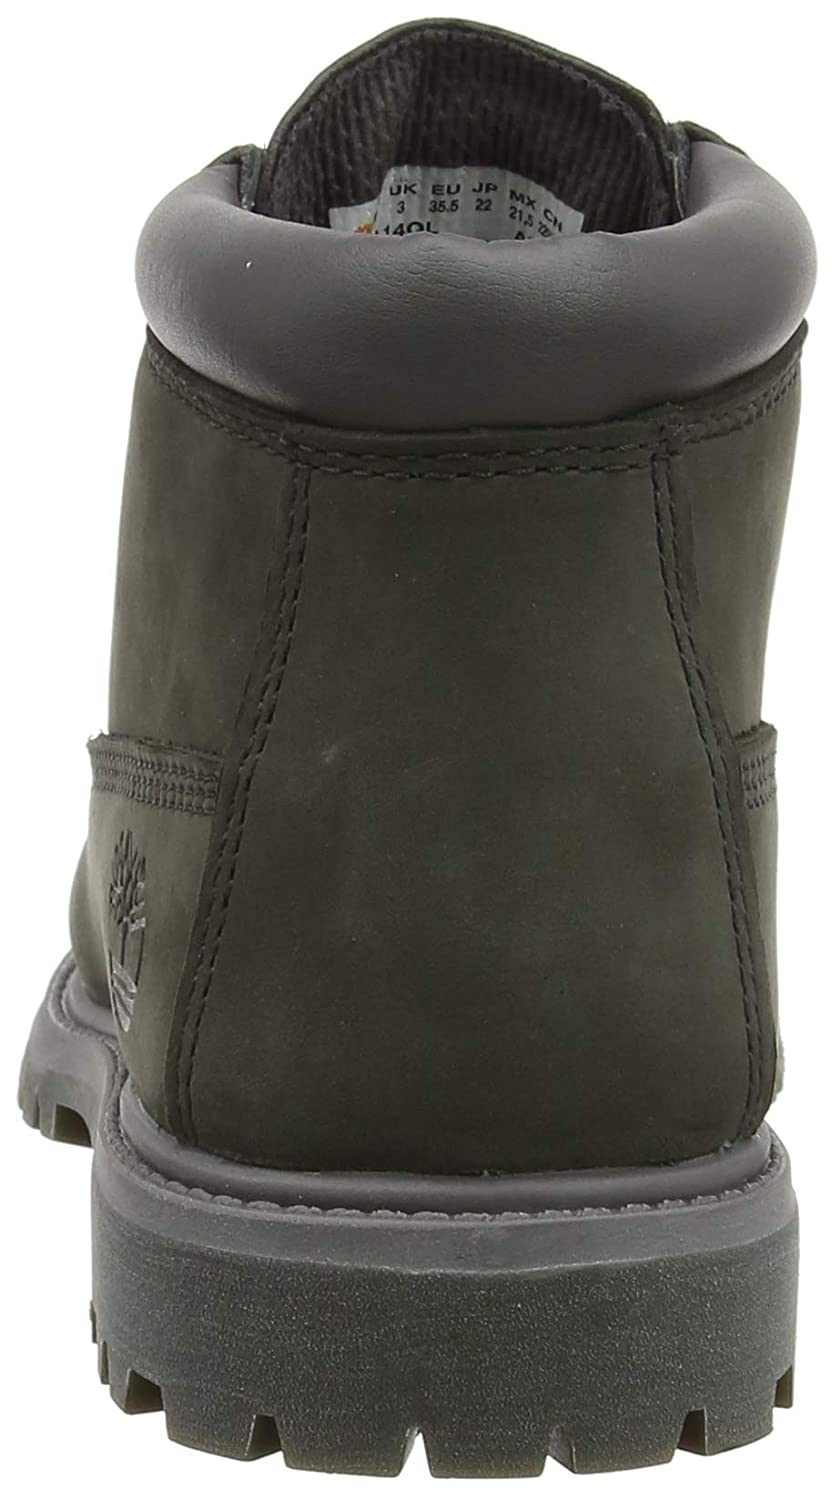 d64e03a0 Timberland Nellie Double, Botas Chukka para Mujer: Timberland: Amazon.es:  Zapatos y complementos